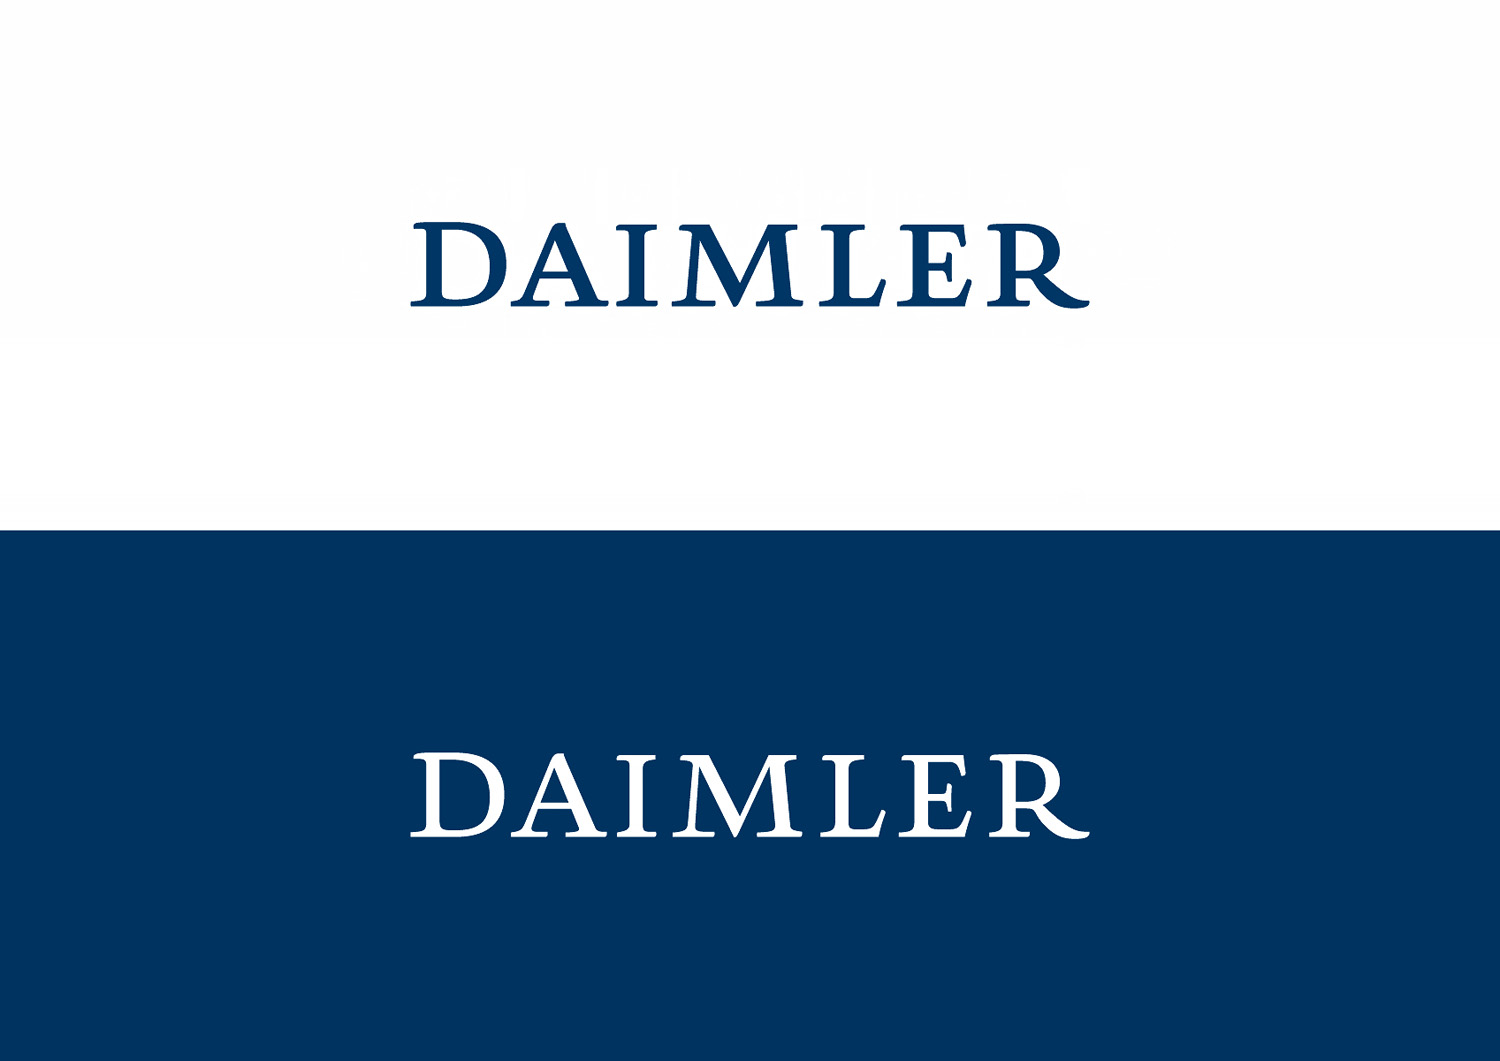 Daimler Logos 2007 Messingerdesign